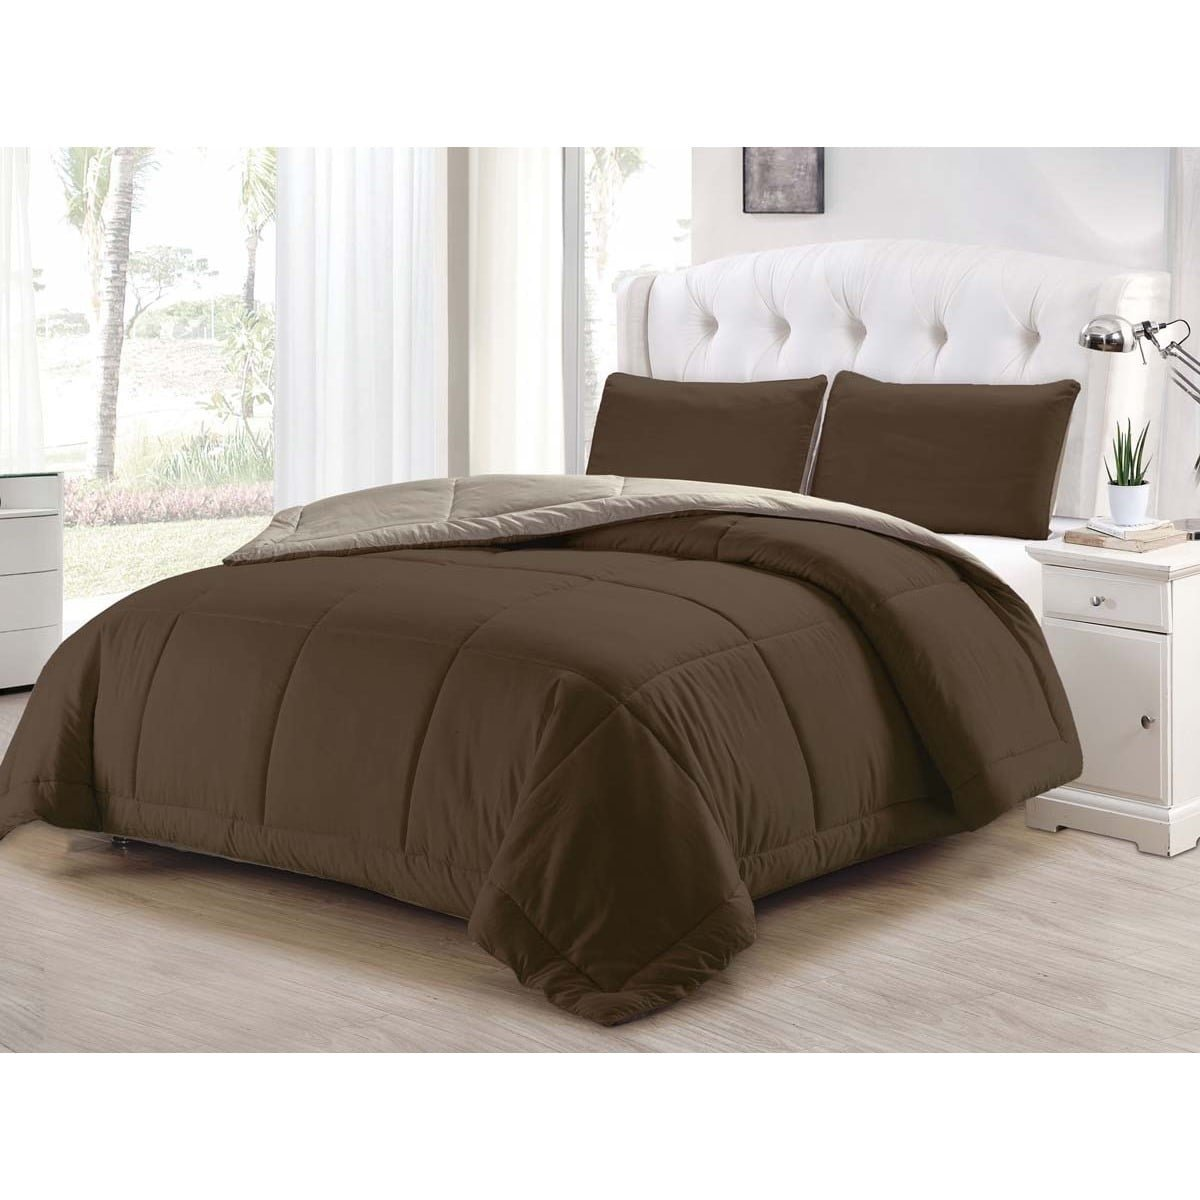 Duck River Textile -  Samantha Hotel Quality Luxury Comforter Duvet Insert Cover Hypoallergenic | 3 Piece Set |, | Queen Size | Brown & Taupe